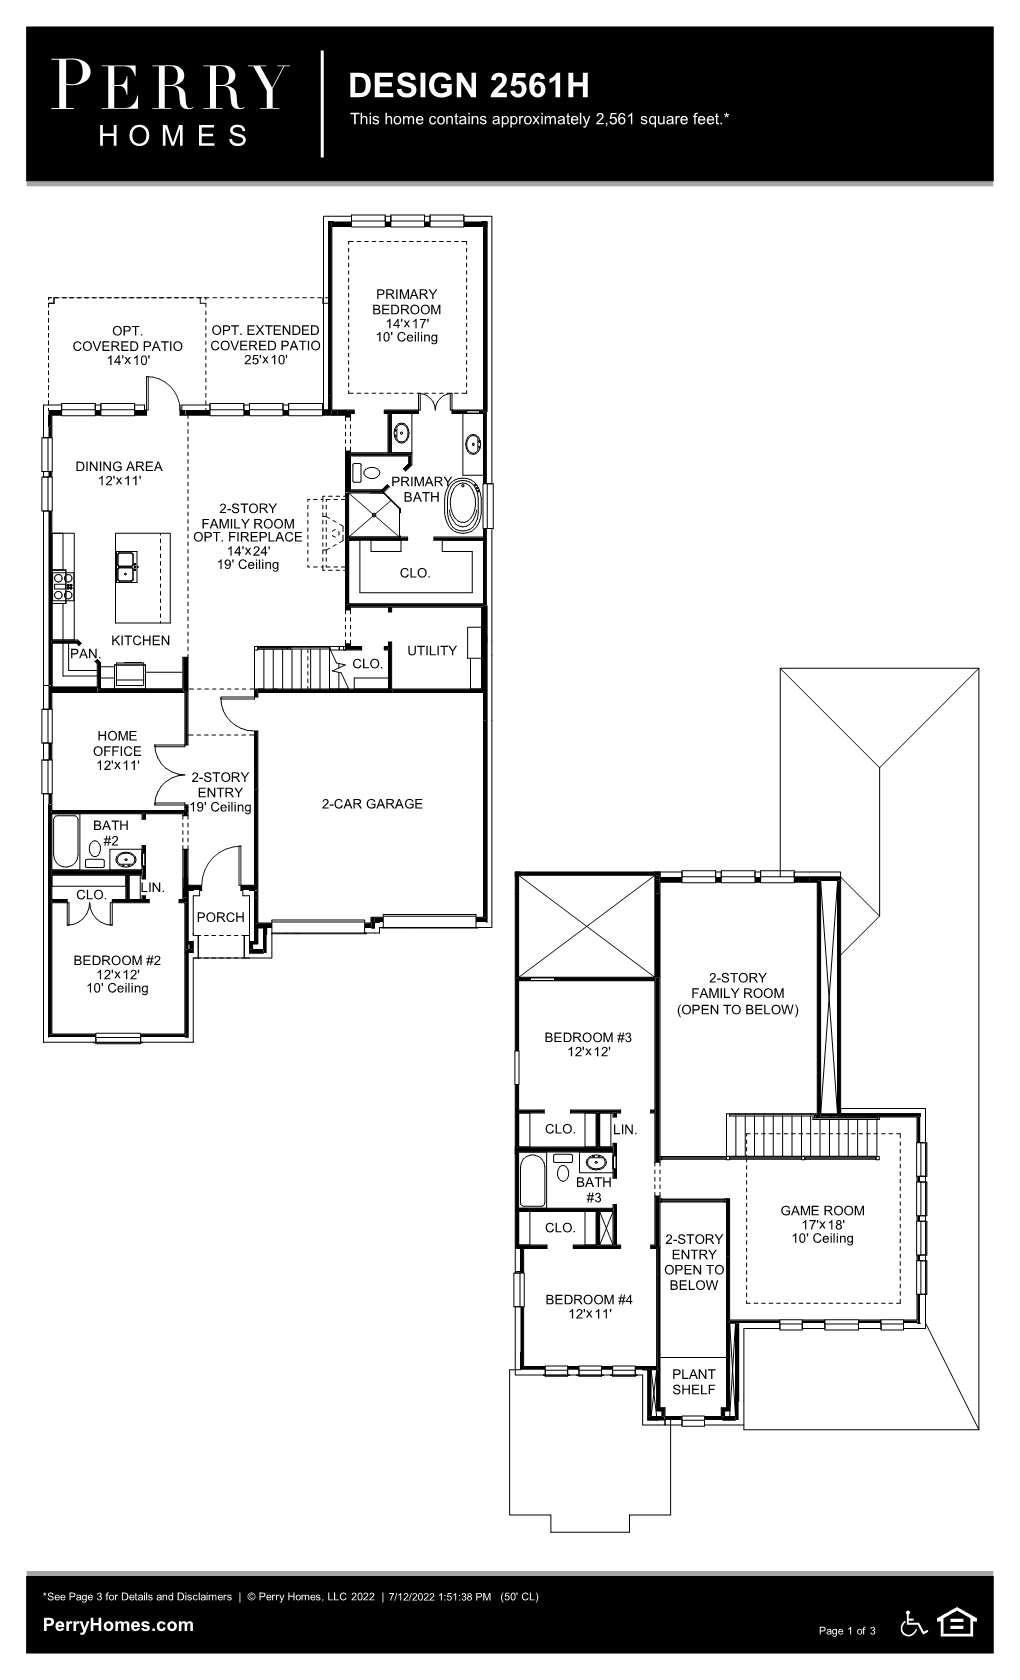 Floor Plan for 2561H